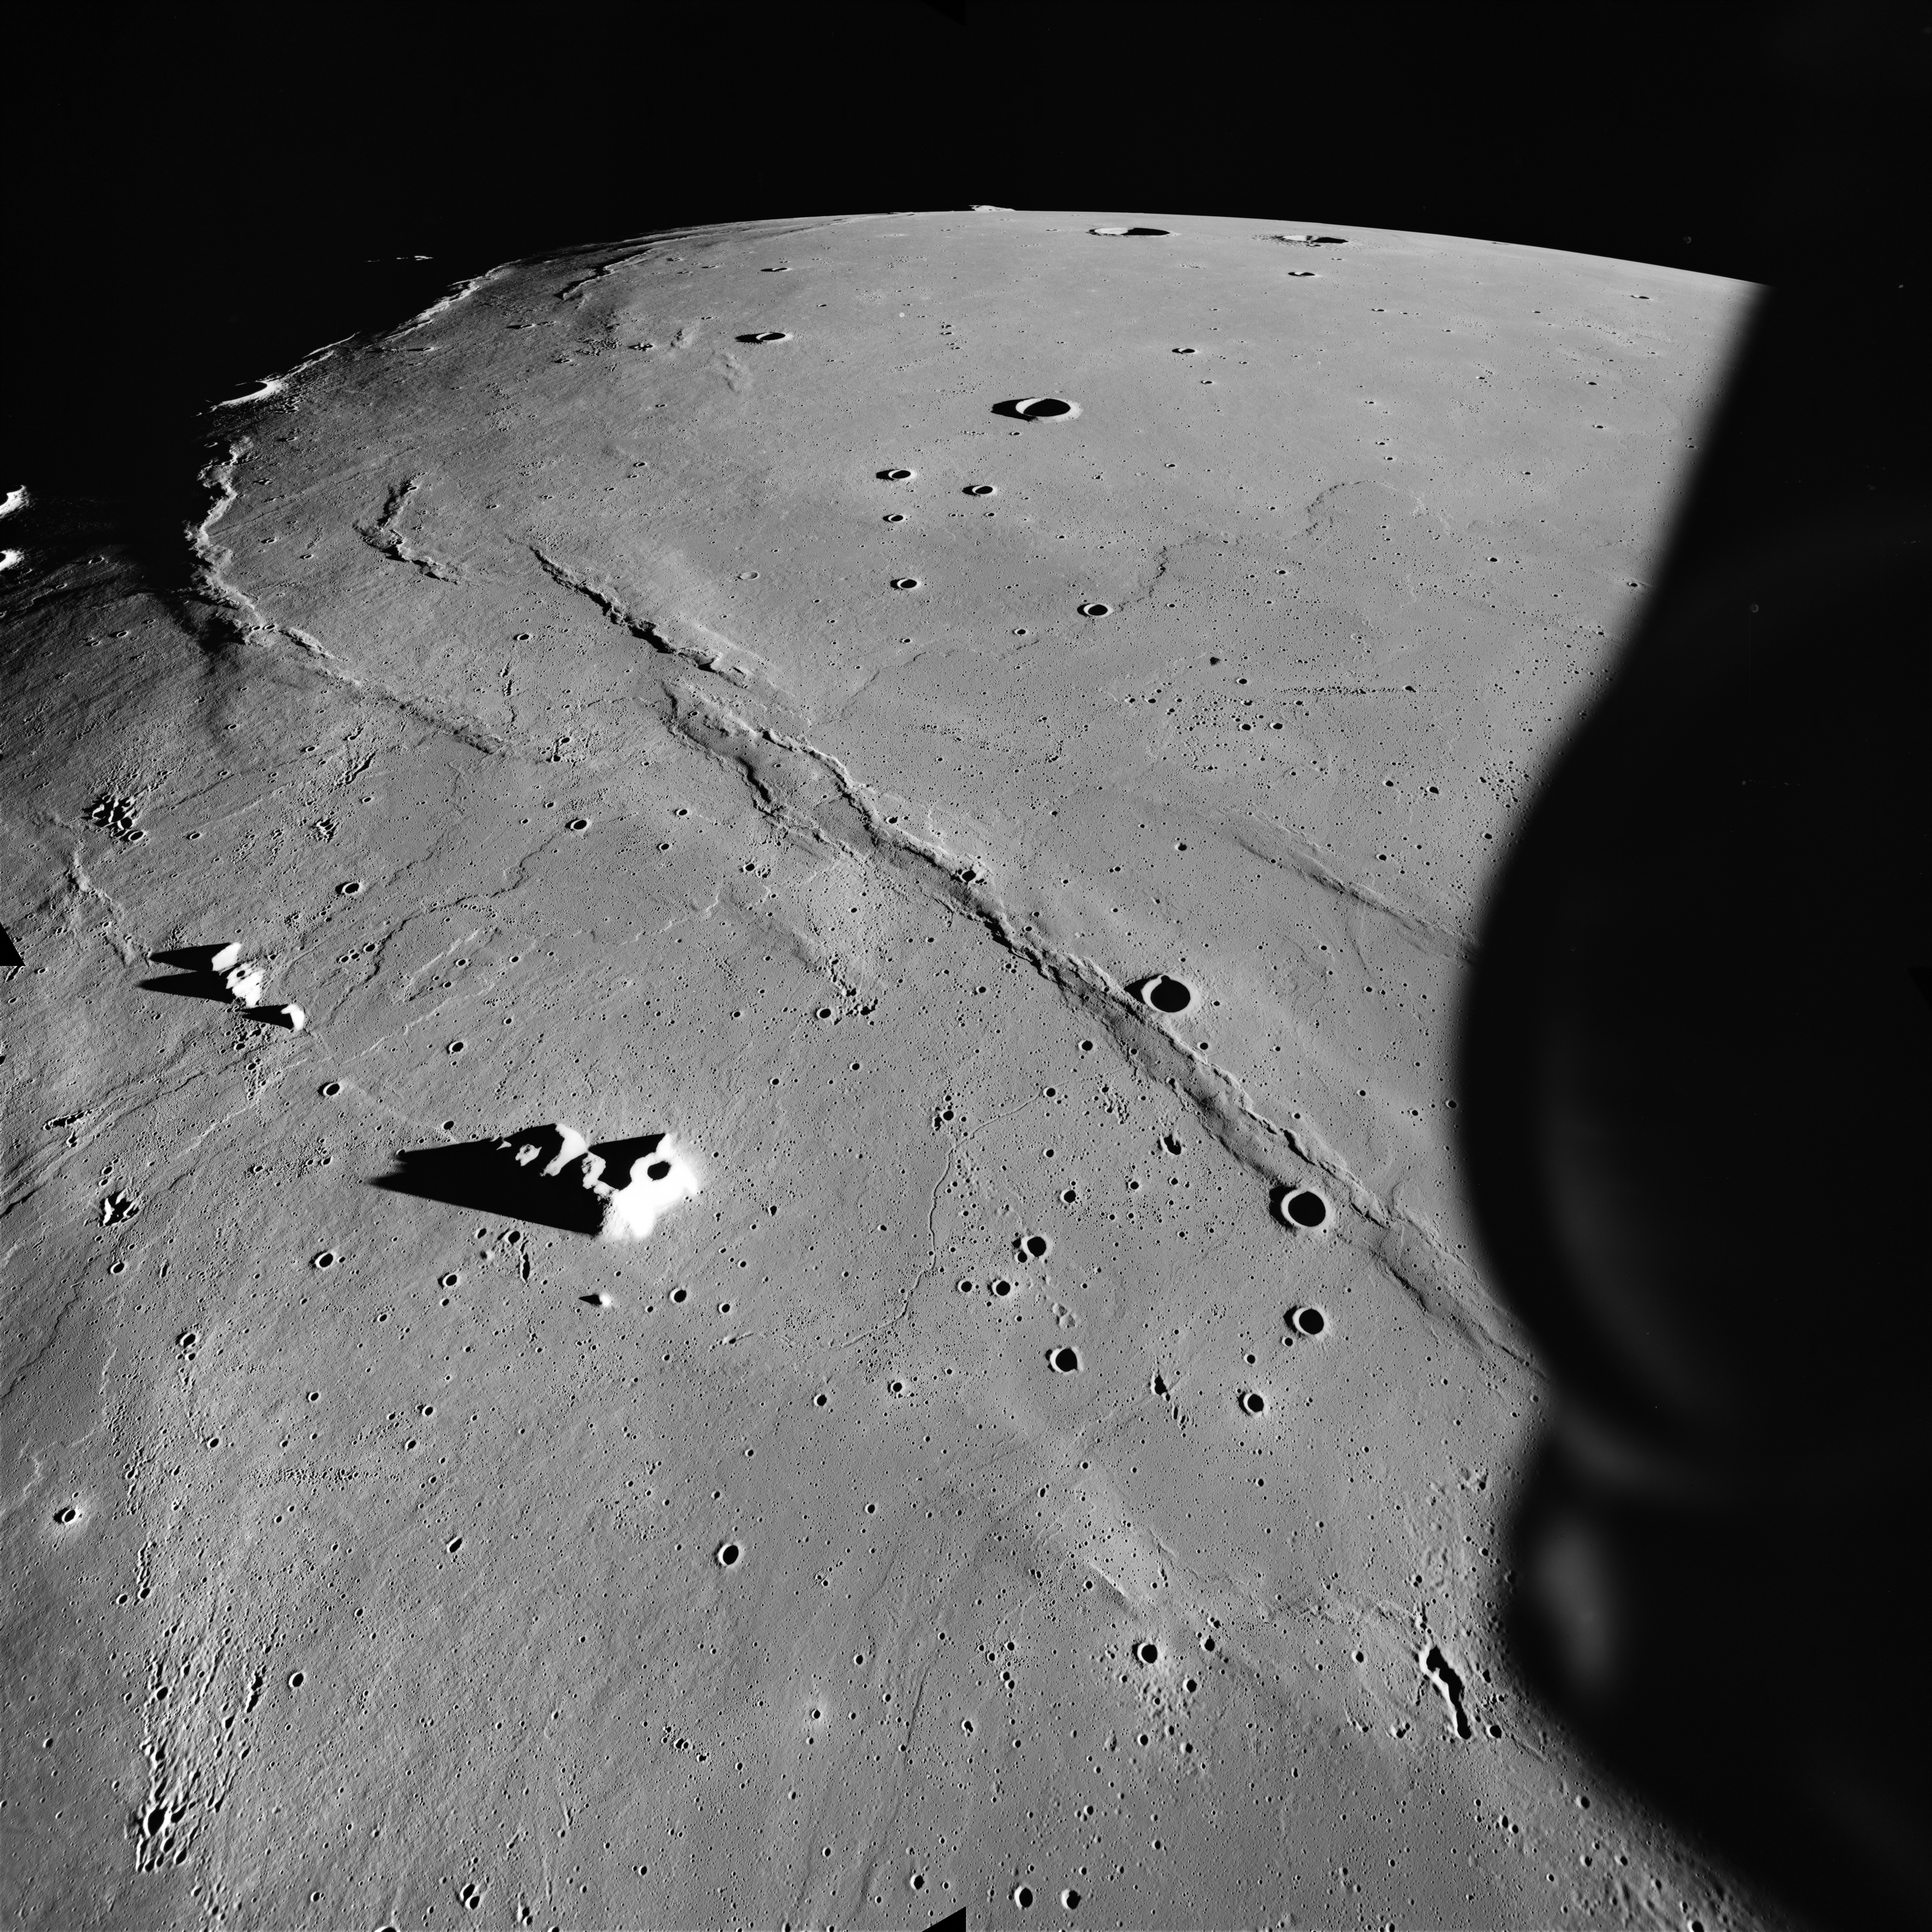 nasa archive photos of moon - photo #6